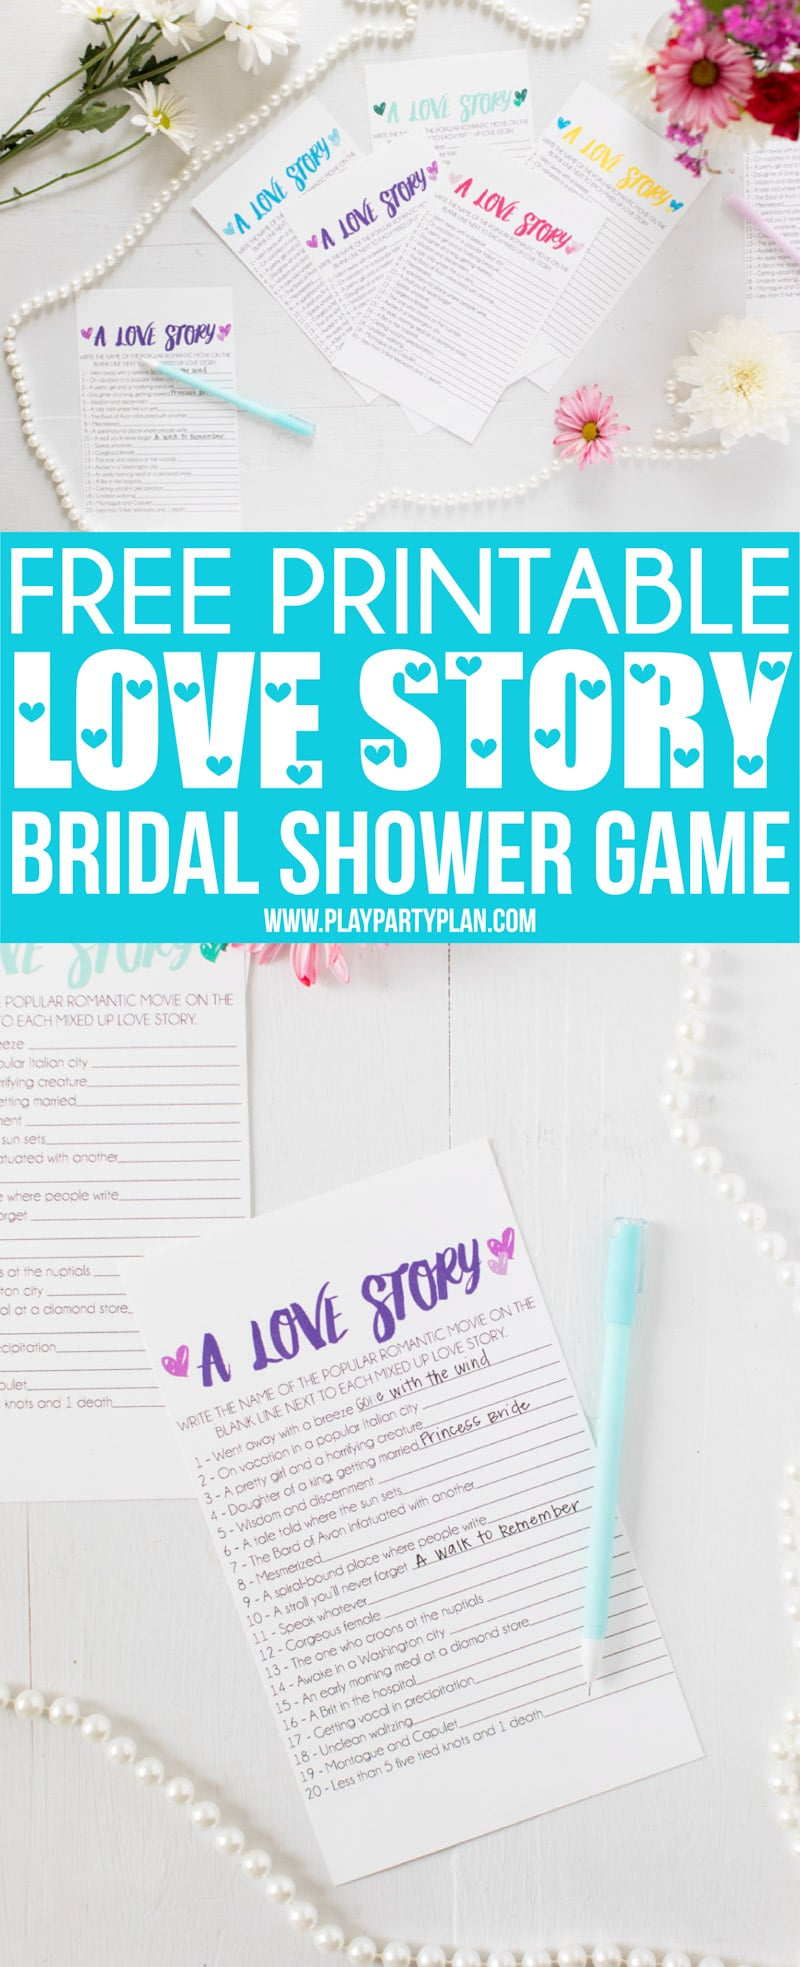 Free Printable Love Story Bridal Shower Game - Play Party Plan